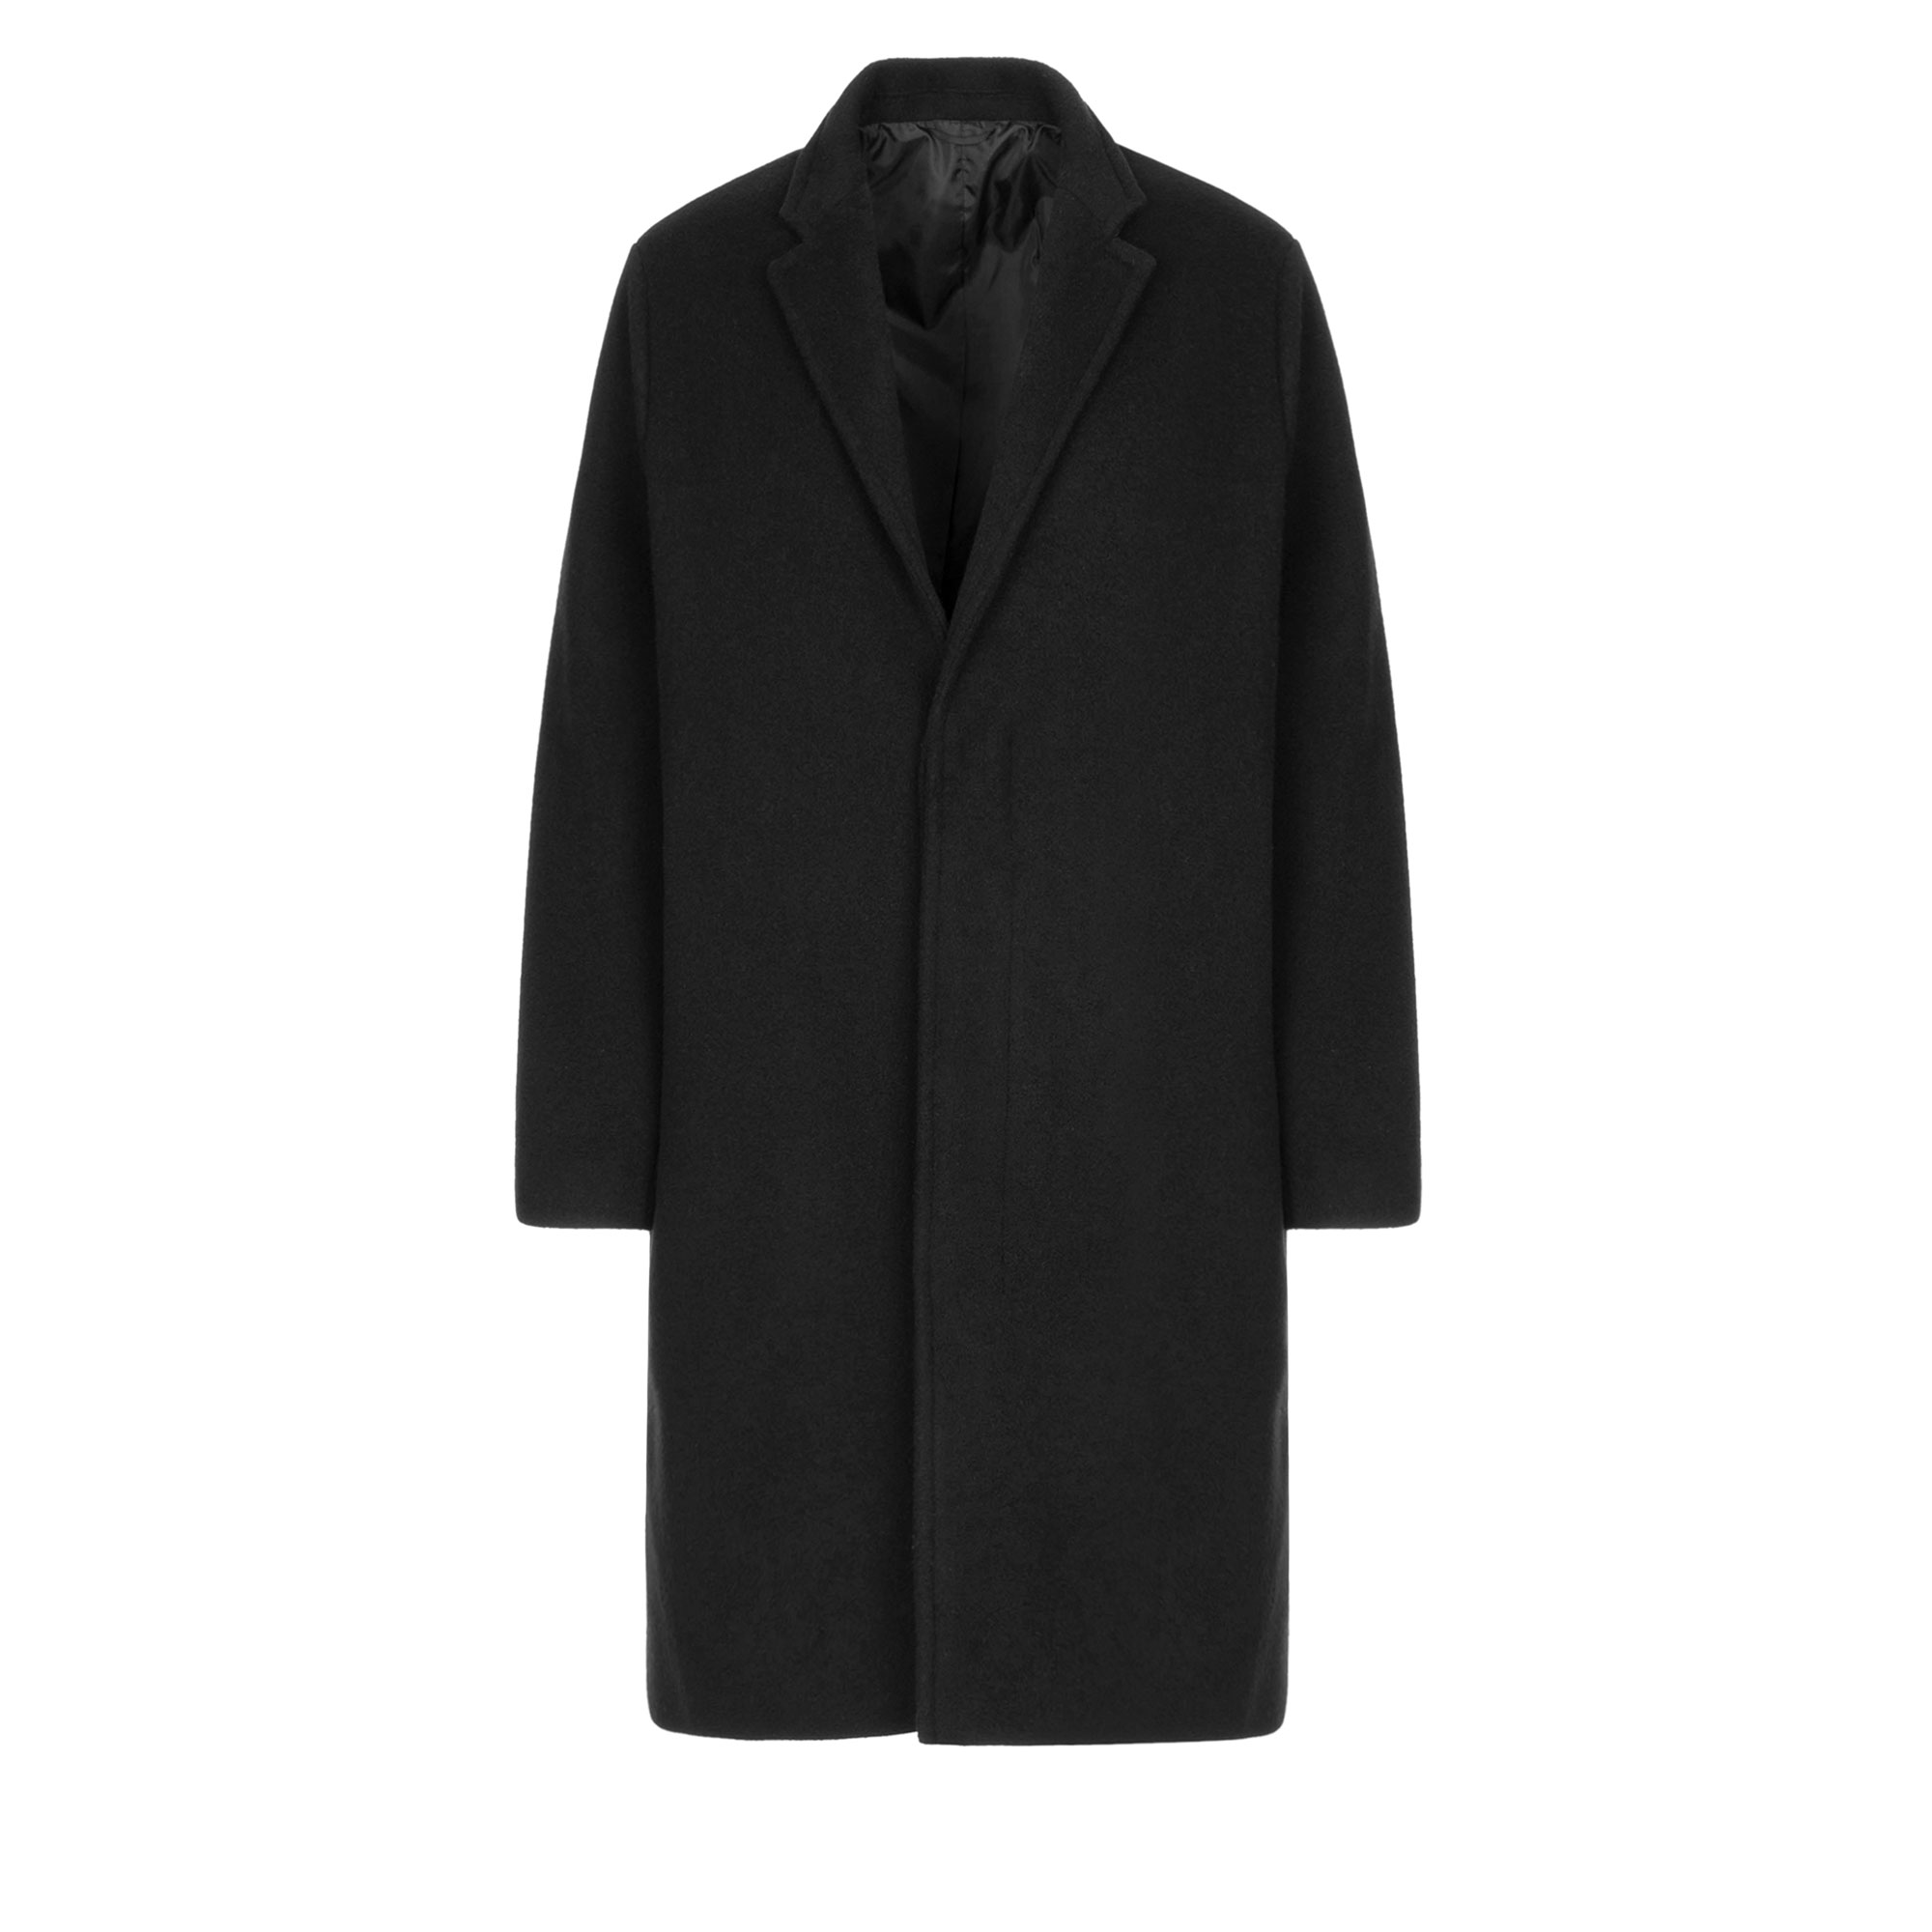 hidden button wool single coat / black